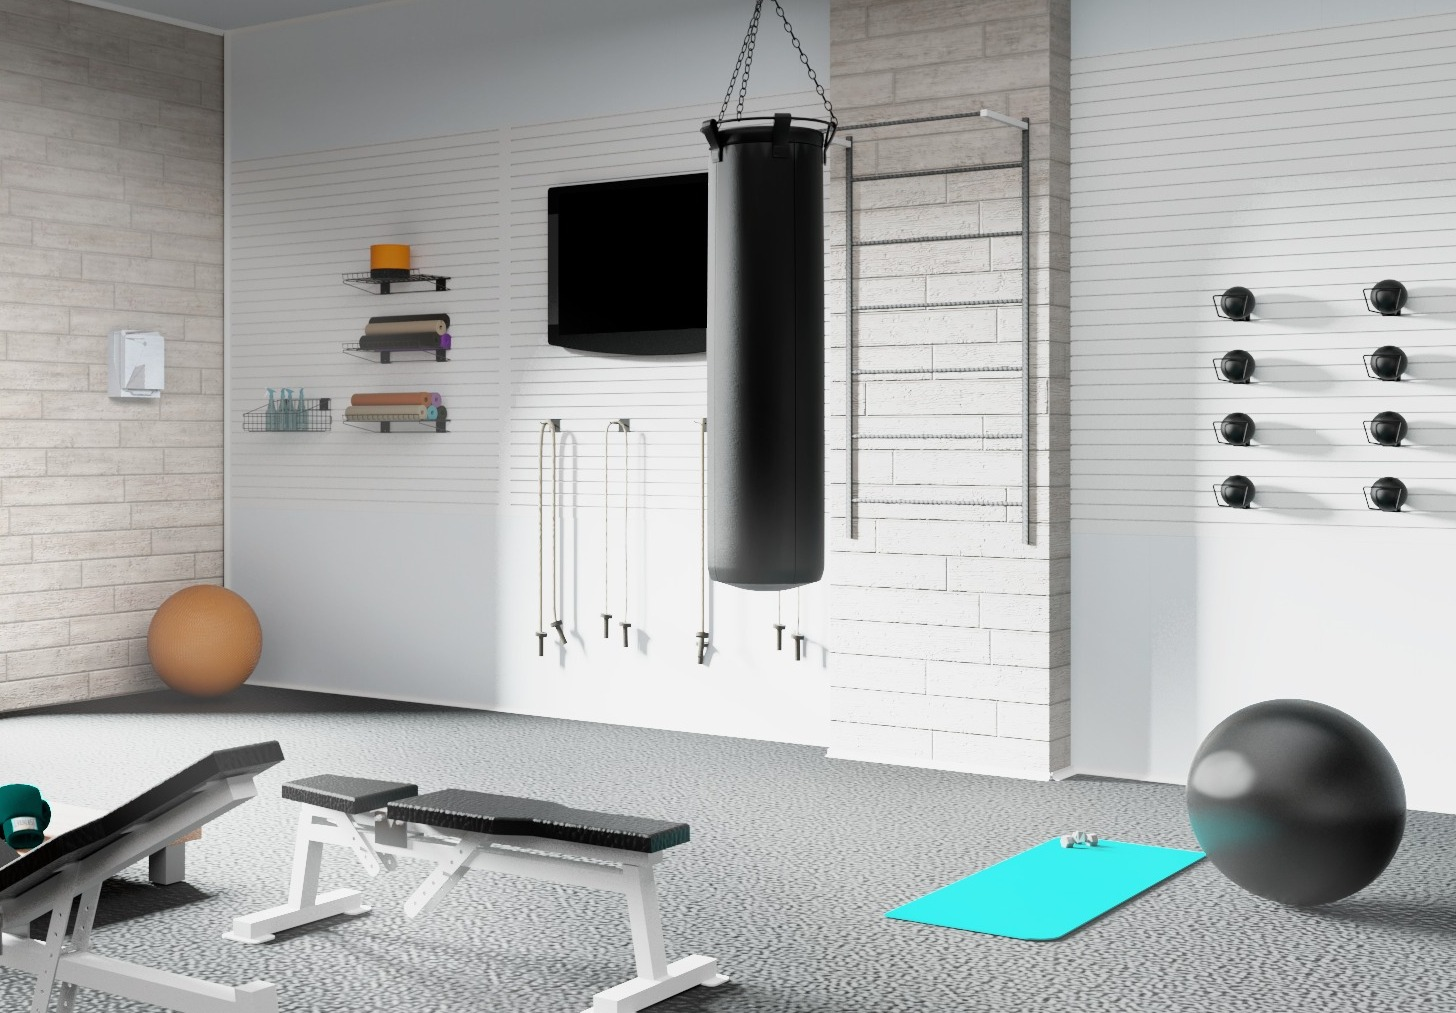 Garage Gym Design - Wall, Ceilings and Floor Protection